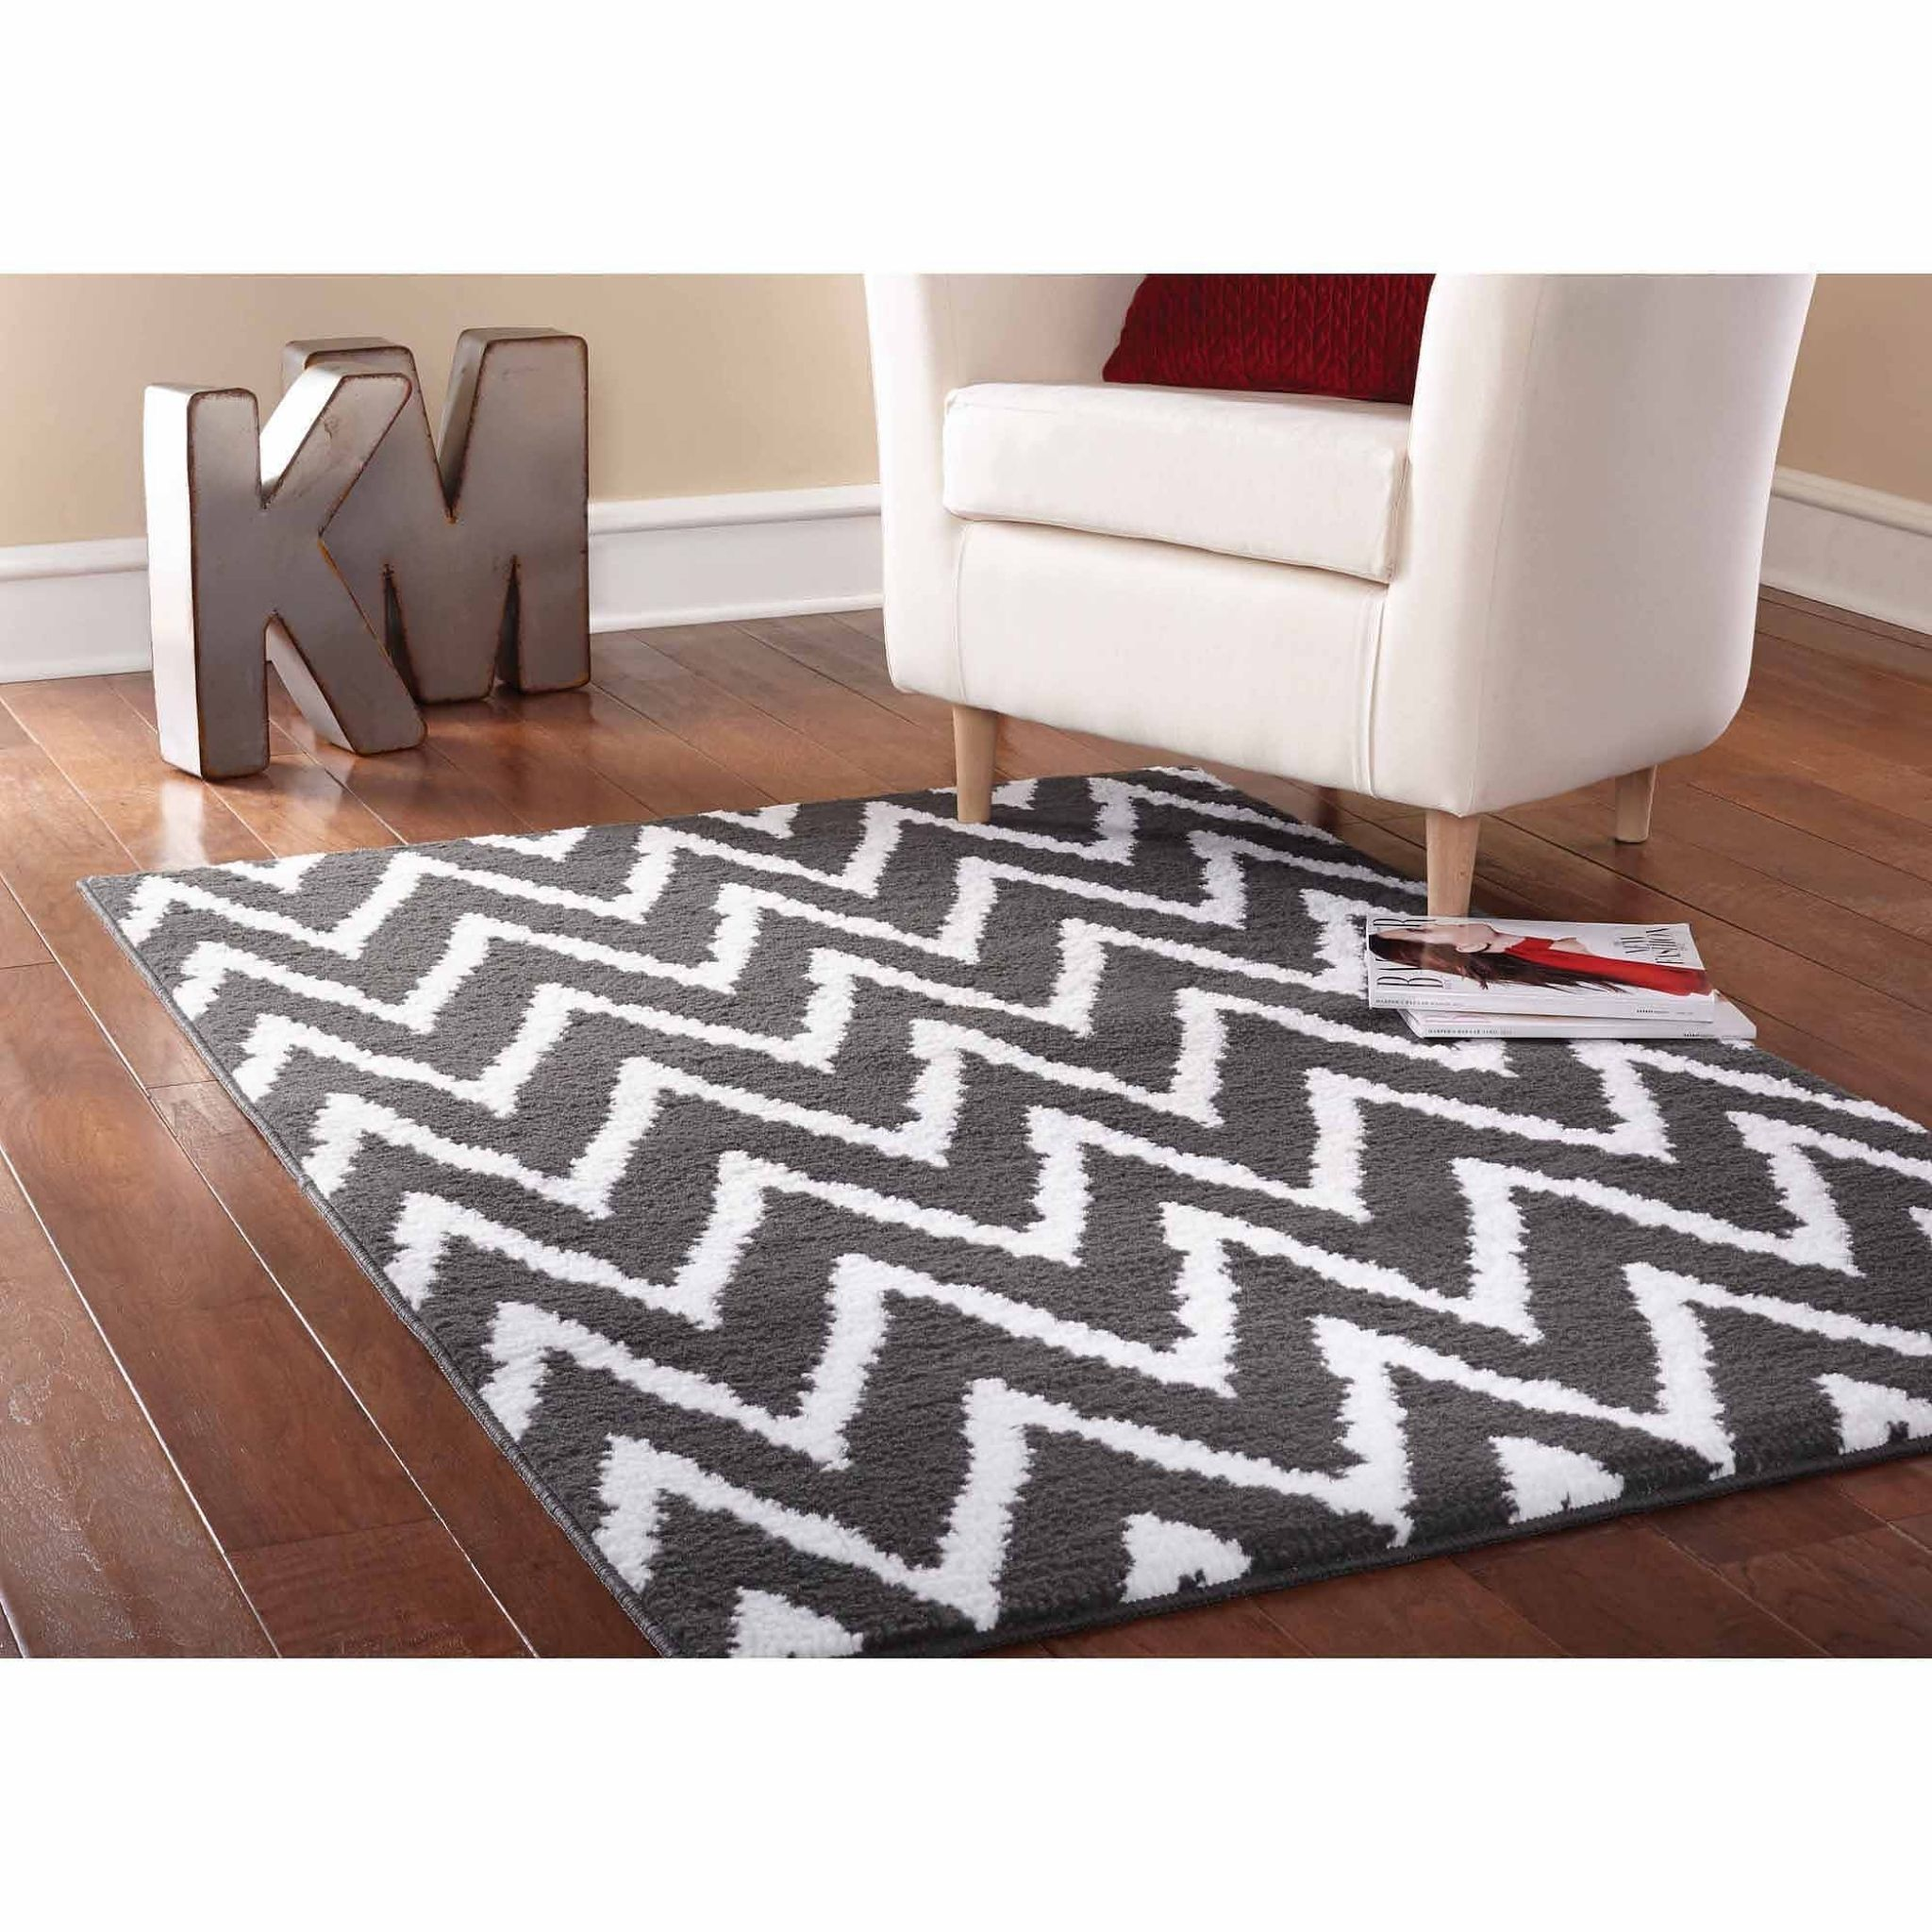 Dorm Room Area Rugs   Best Interior Paint Brand Check More At Http:// Part 40